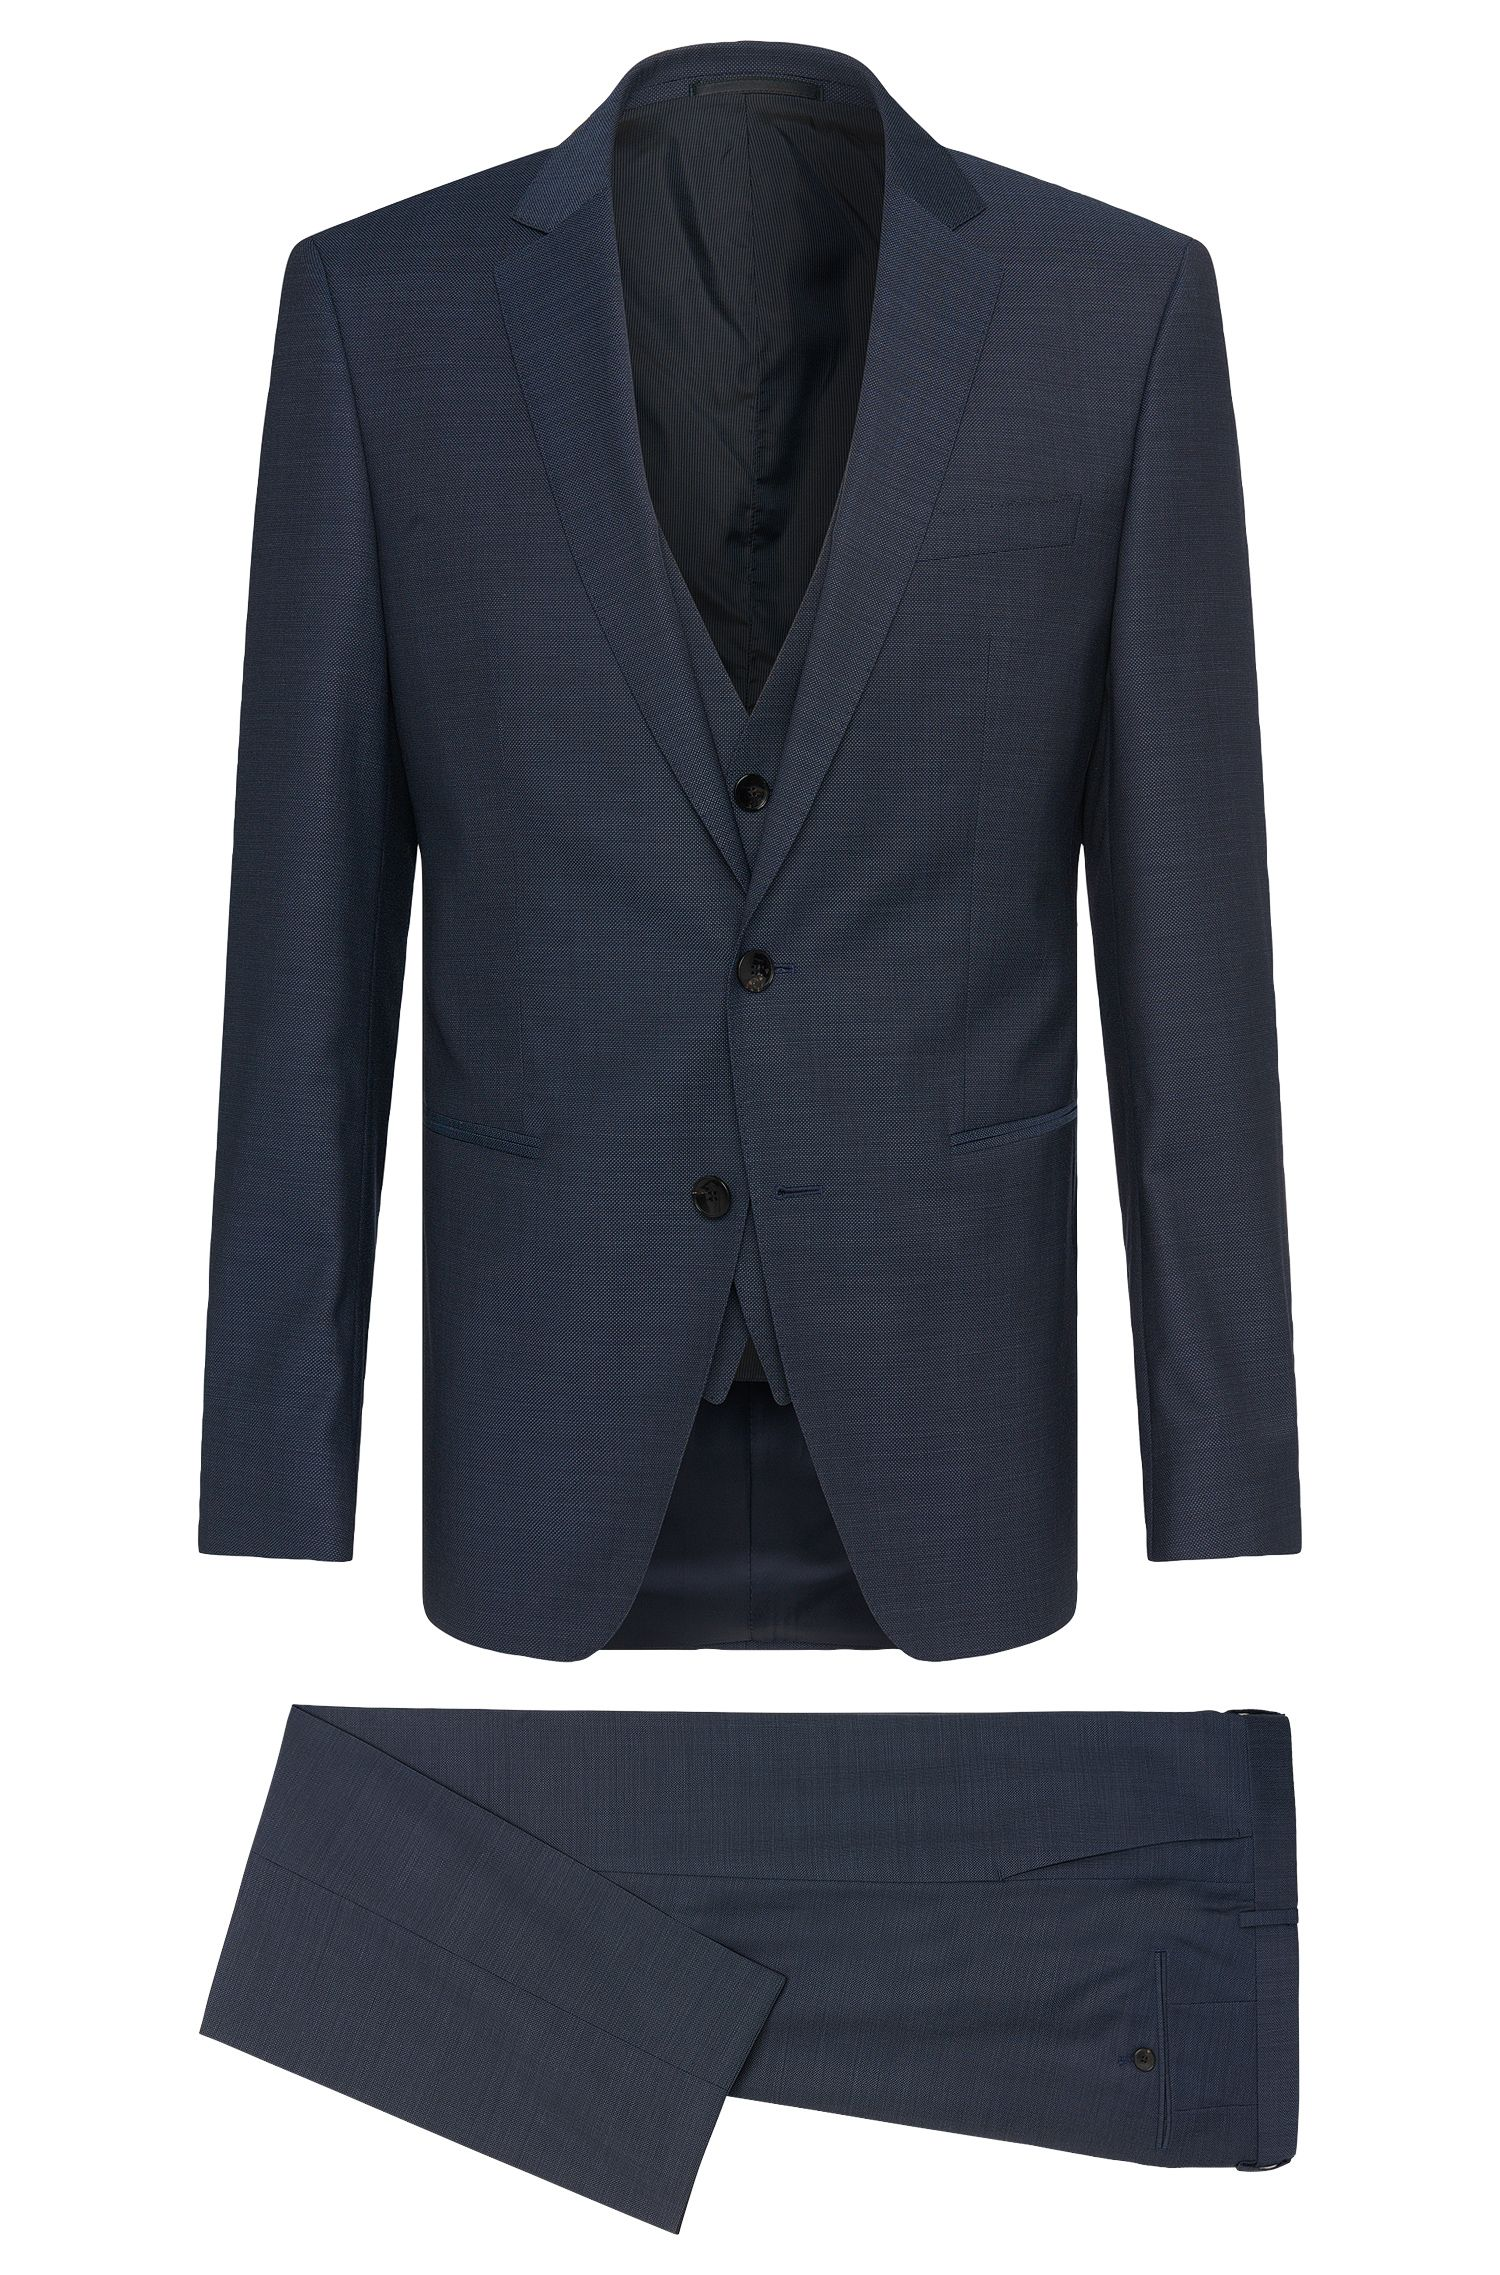 Sharkskin Italian Super 130 Virgin Wool 3-Piece Suit, Slim Fit | Hamsen/Glen WE